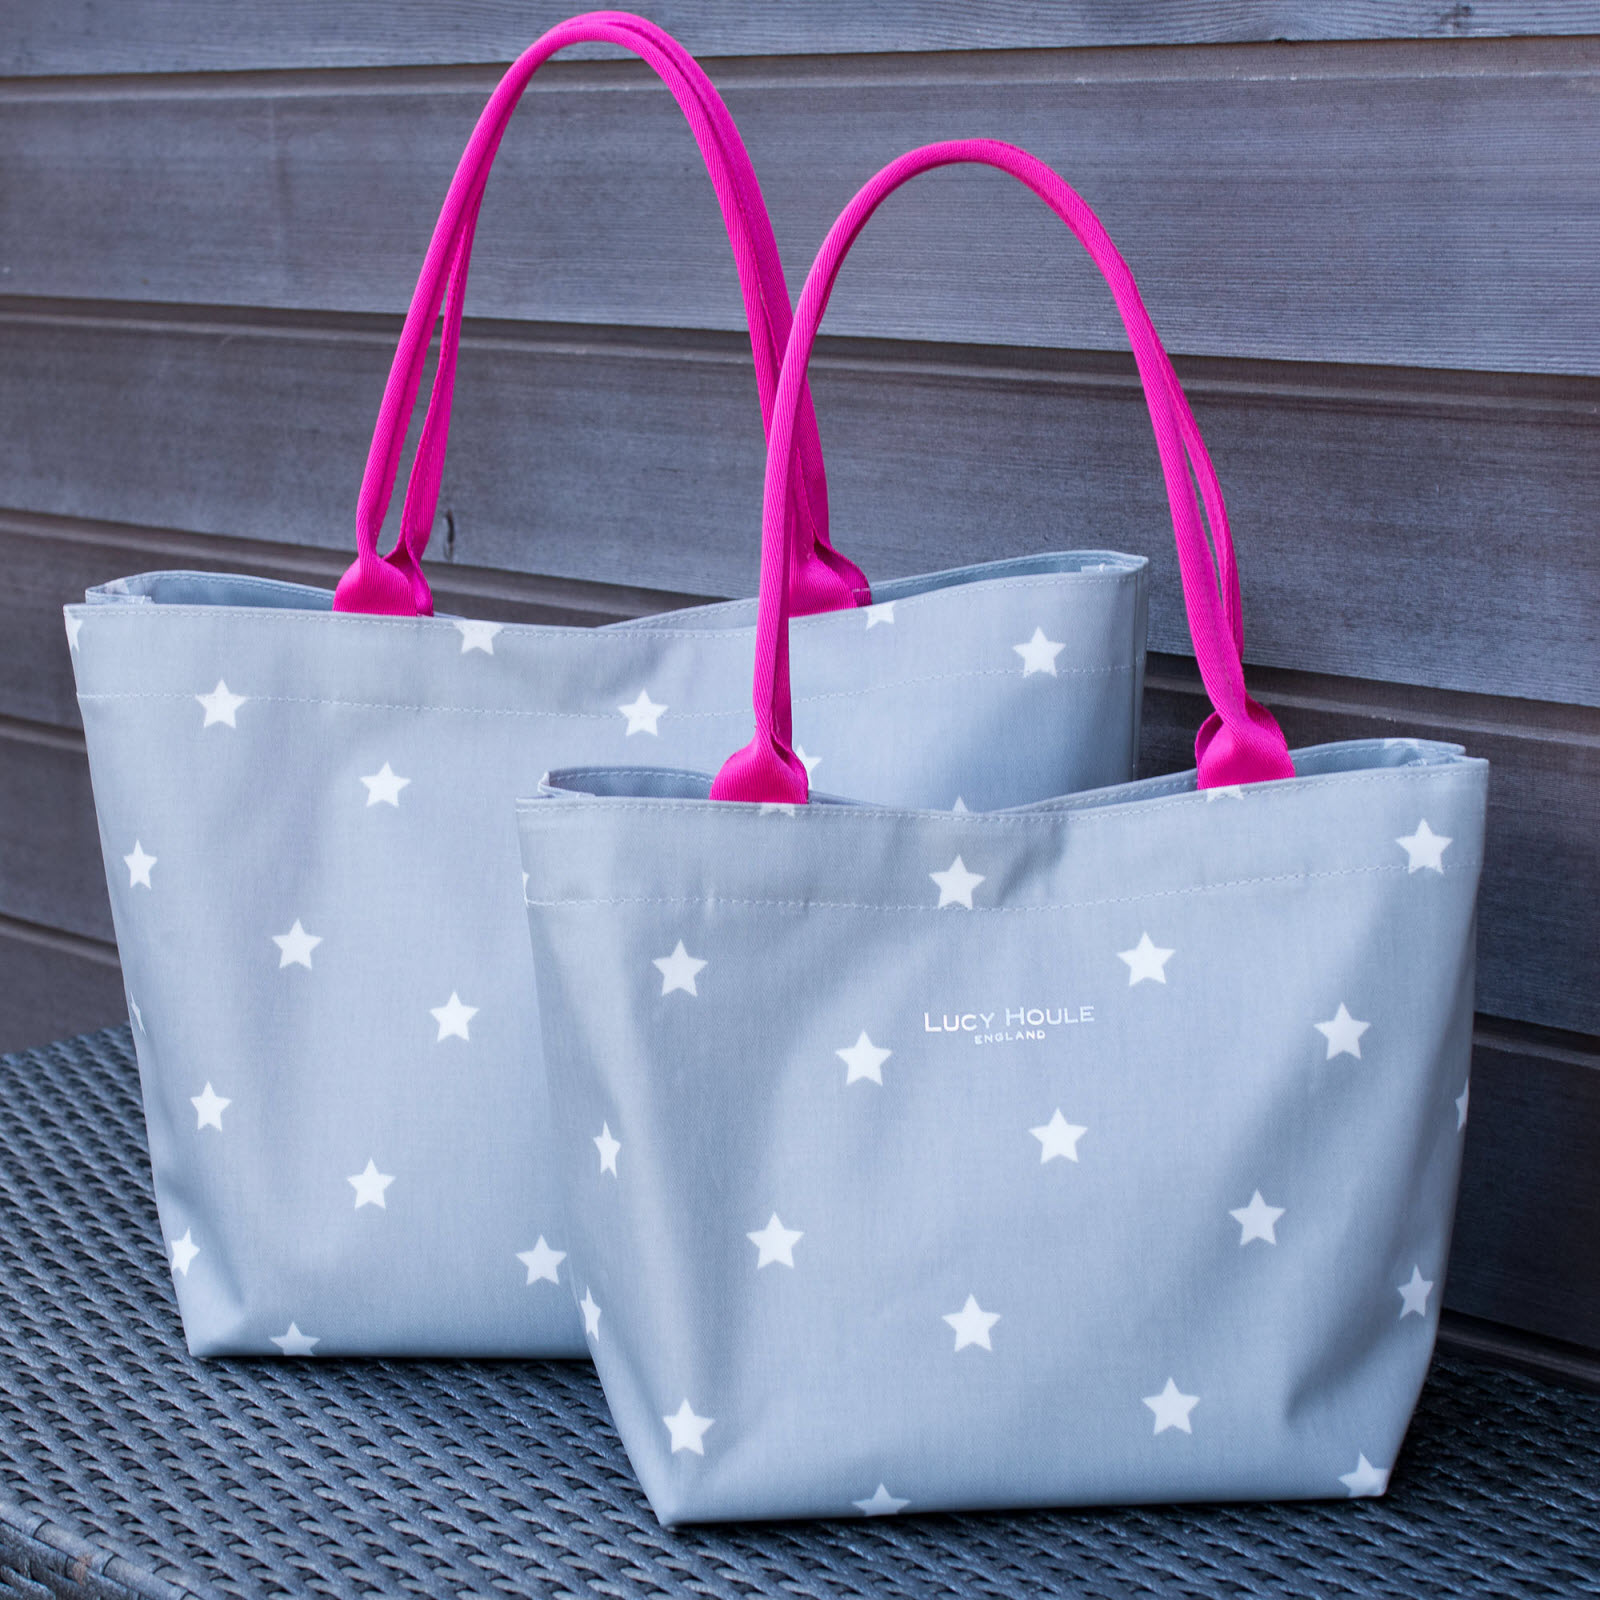 Grey & White Star Medium Tote Bag with bright pink handles